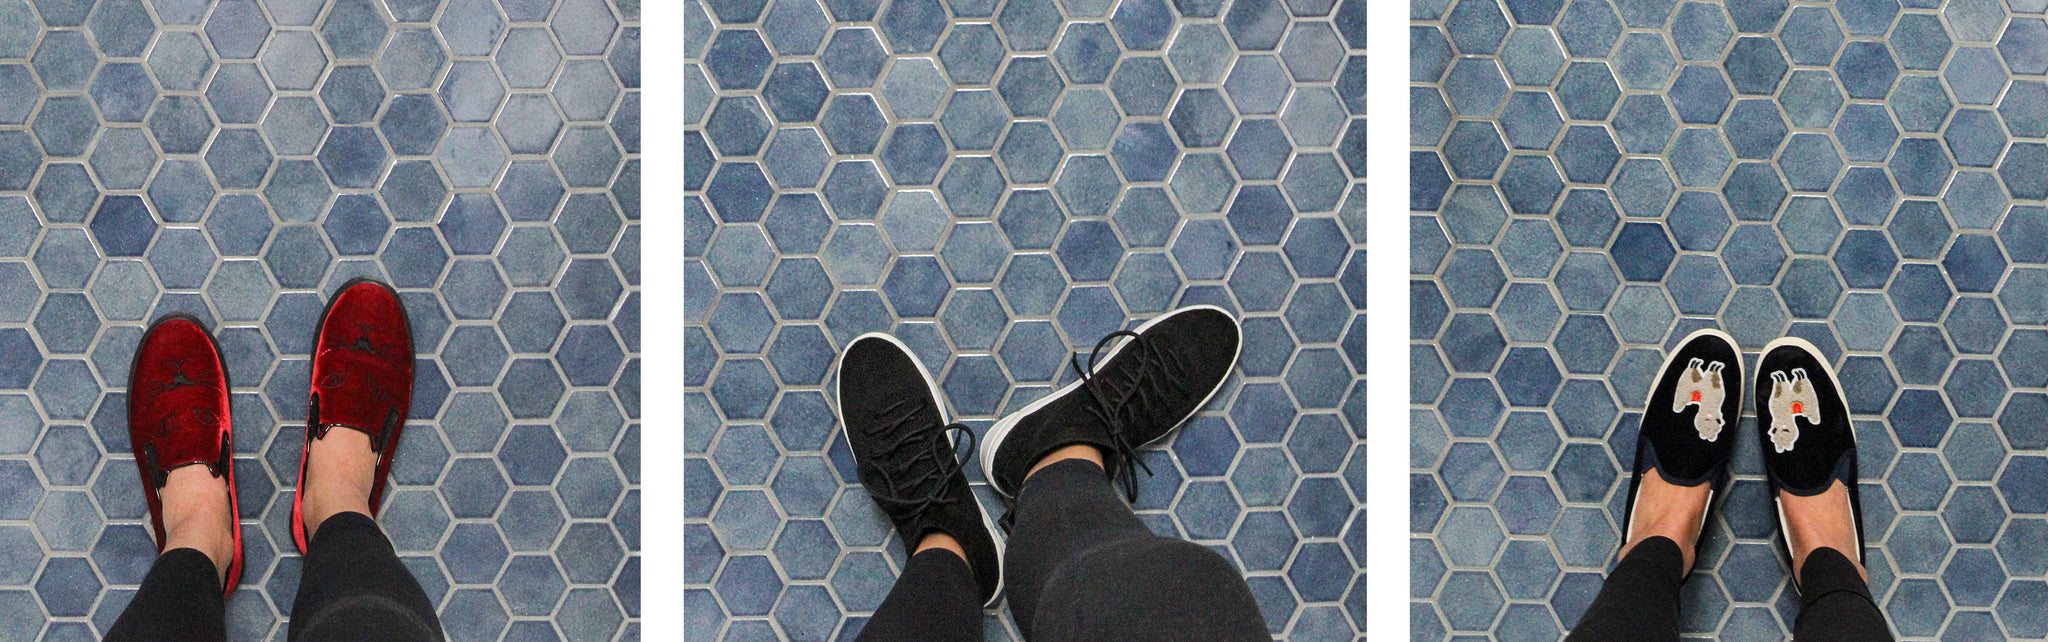 Denim Hexagon Floor Tile